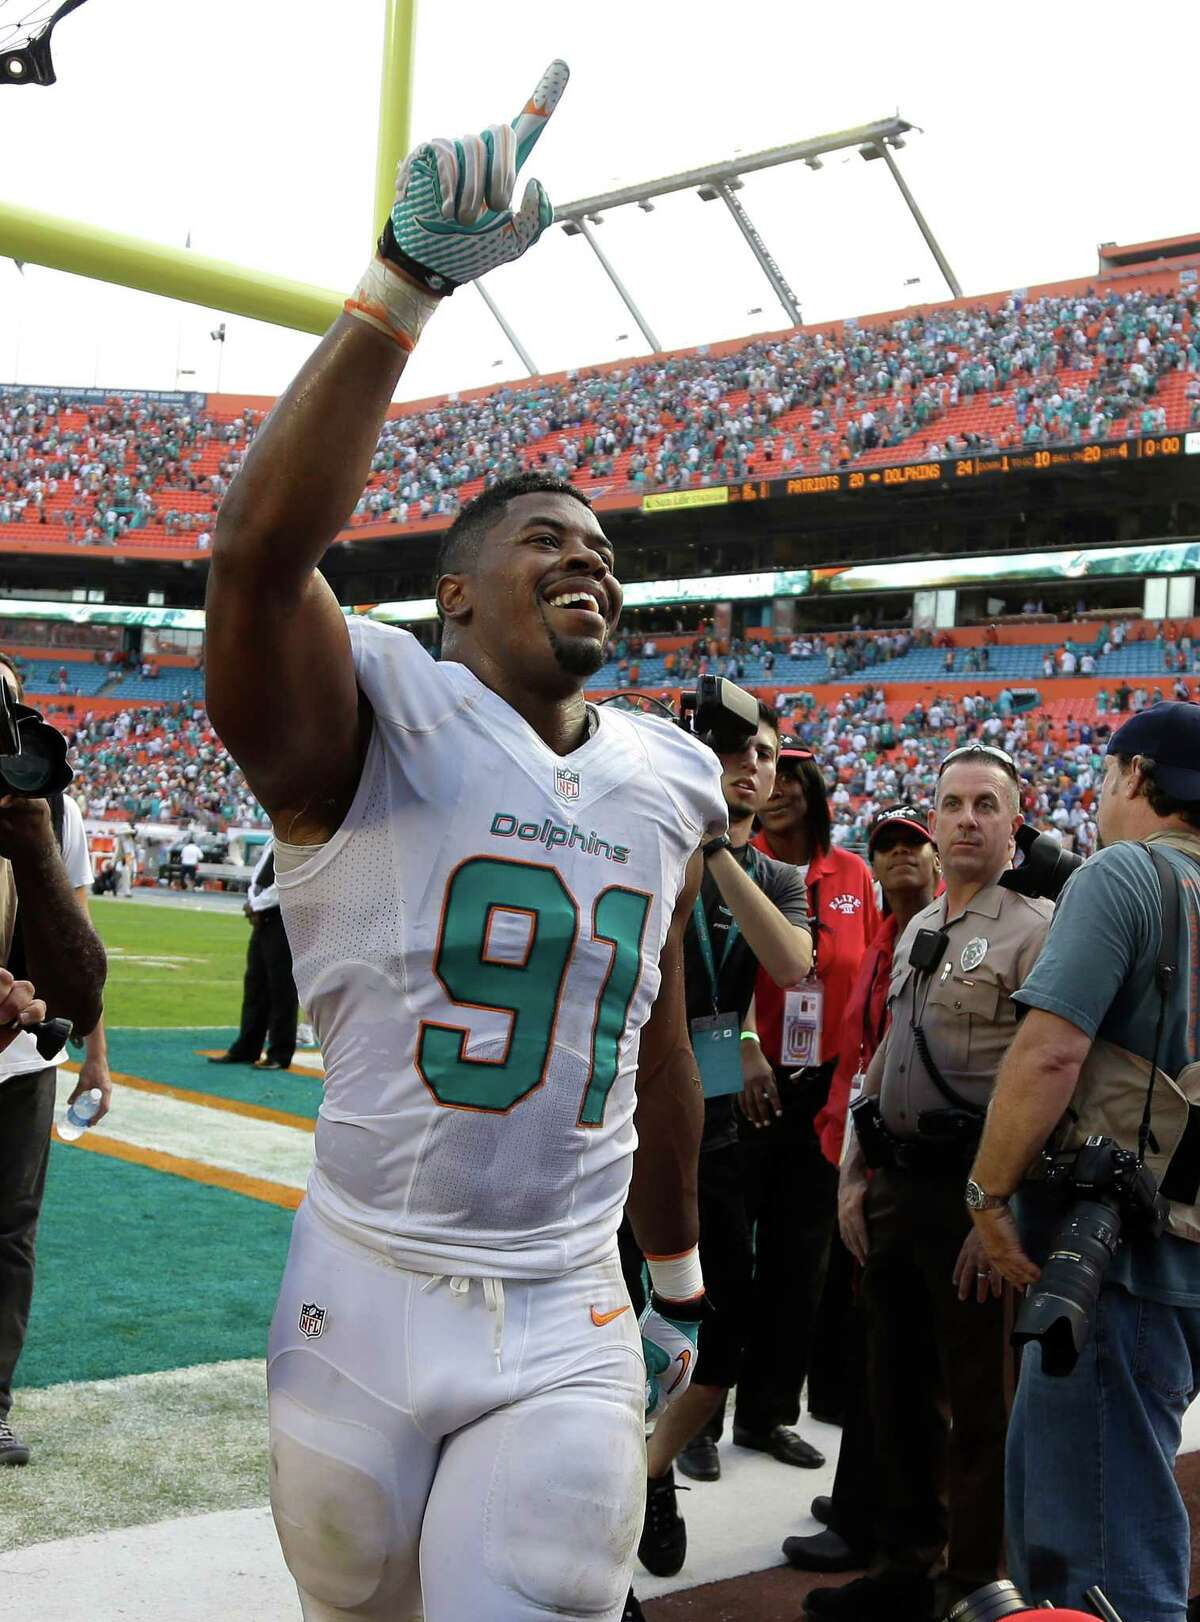 Miami Dolphins defensive end Cameron Wake (91) walks off the field after the Dolphins defeated the New England Patriots 24-20 in an NFL football game on Sunday, Dec. 15, 2013, in Miami Gardens, Fla. (AP Photo/Lynne Sladky) ORG XMIT: SLS121